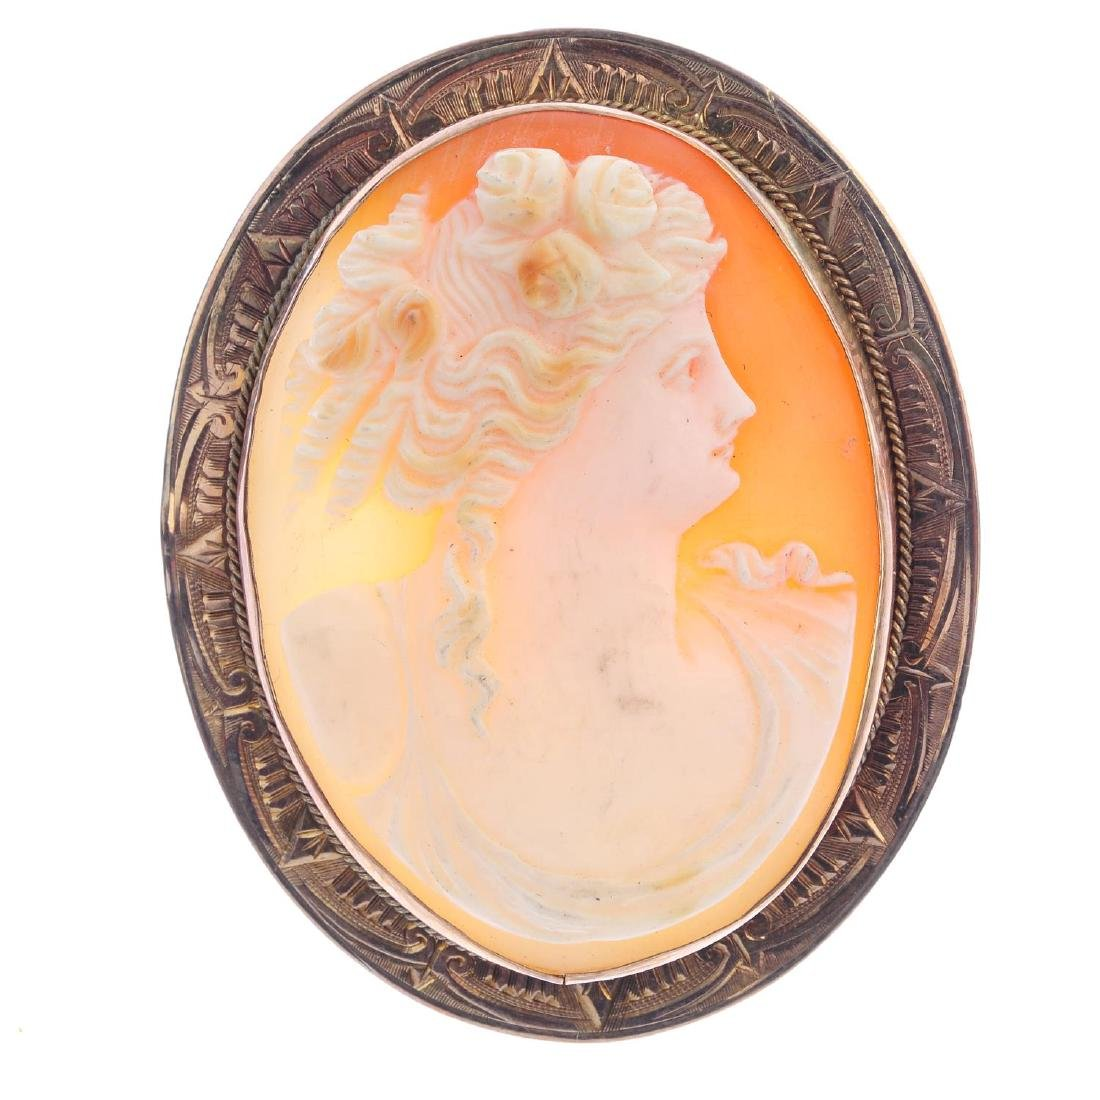 A shell cameo brooch. Of oval outline, carved to depict